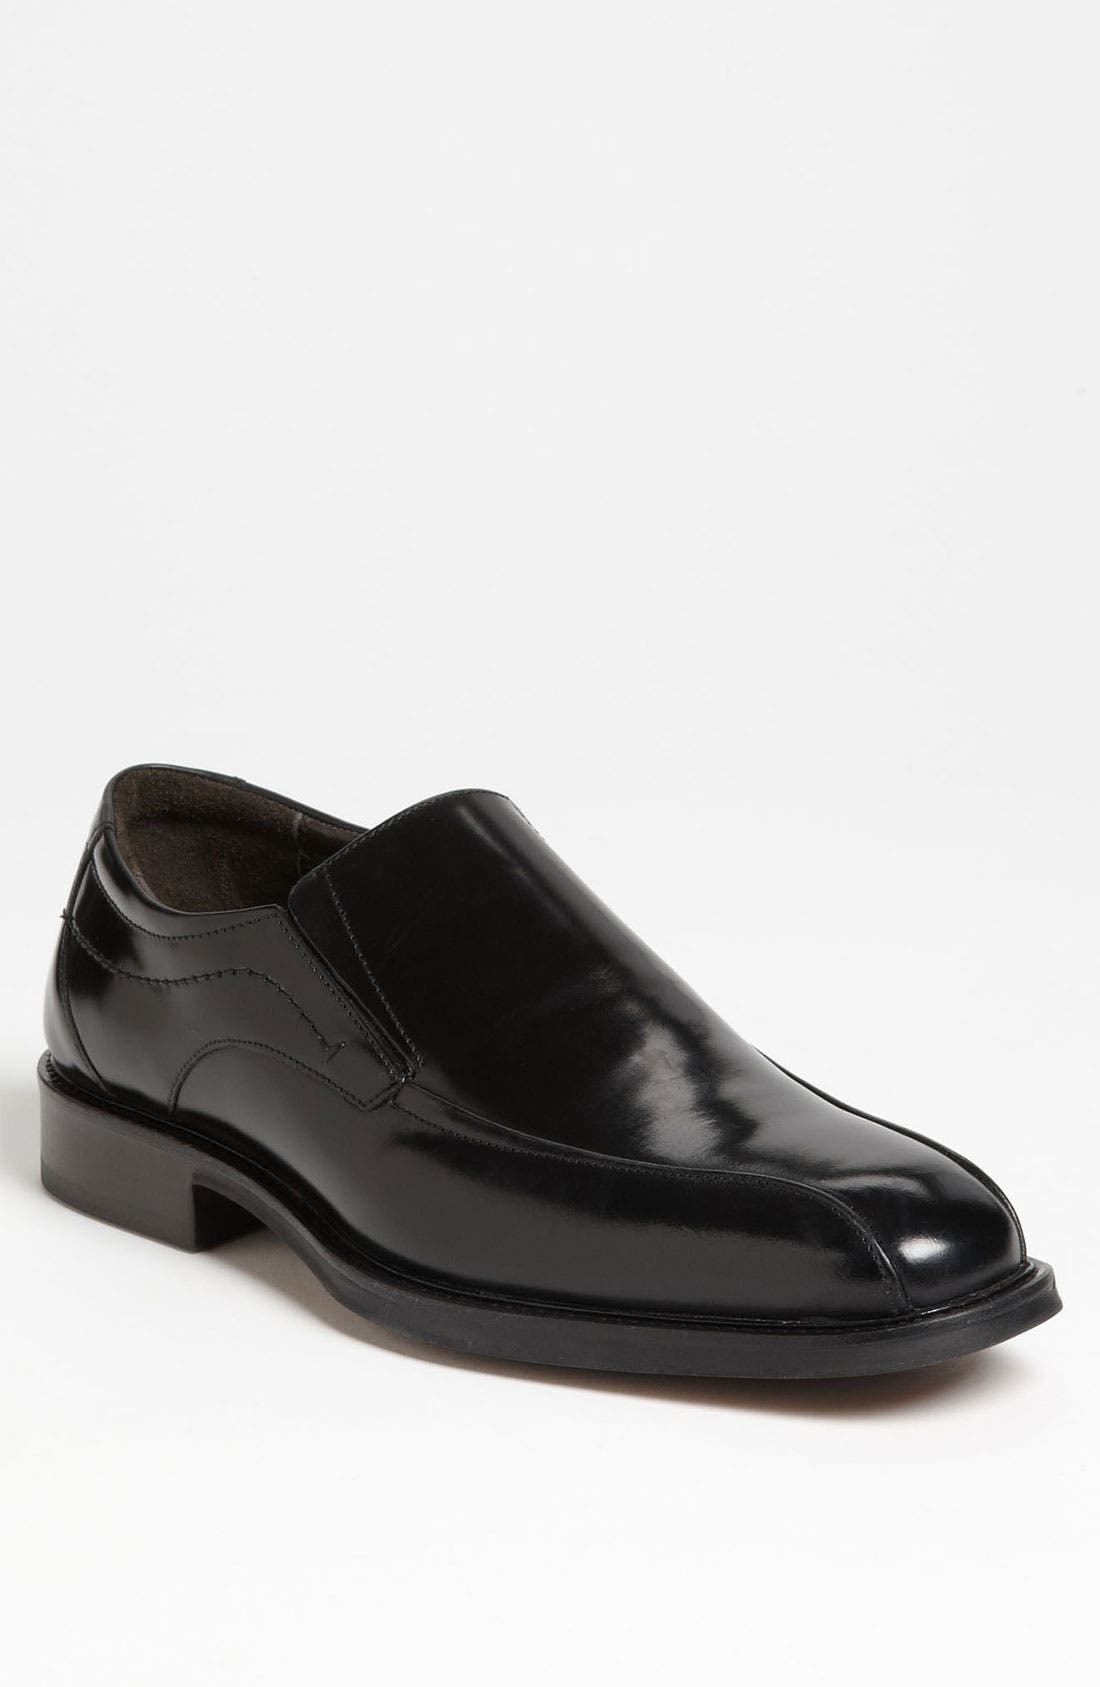 Main Image - Johnston & Murphy 'Alderson' Venetian Loafer